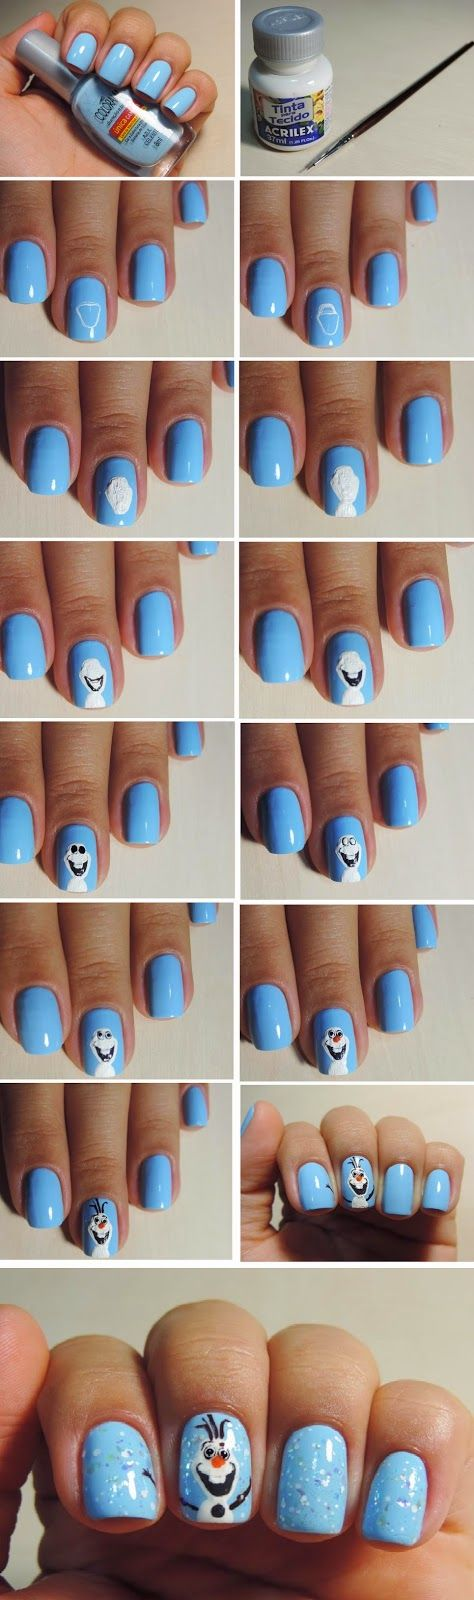 LoLus Fashion: Wonderful Frozen Nail Art Design Tutorials / Best LoLus Nails Fashion